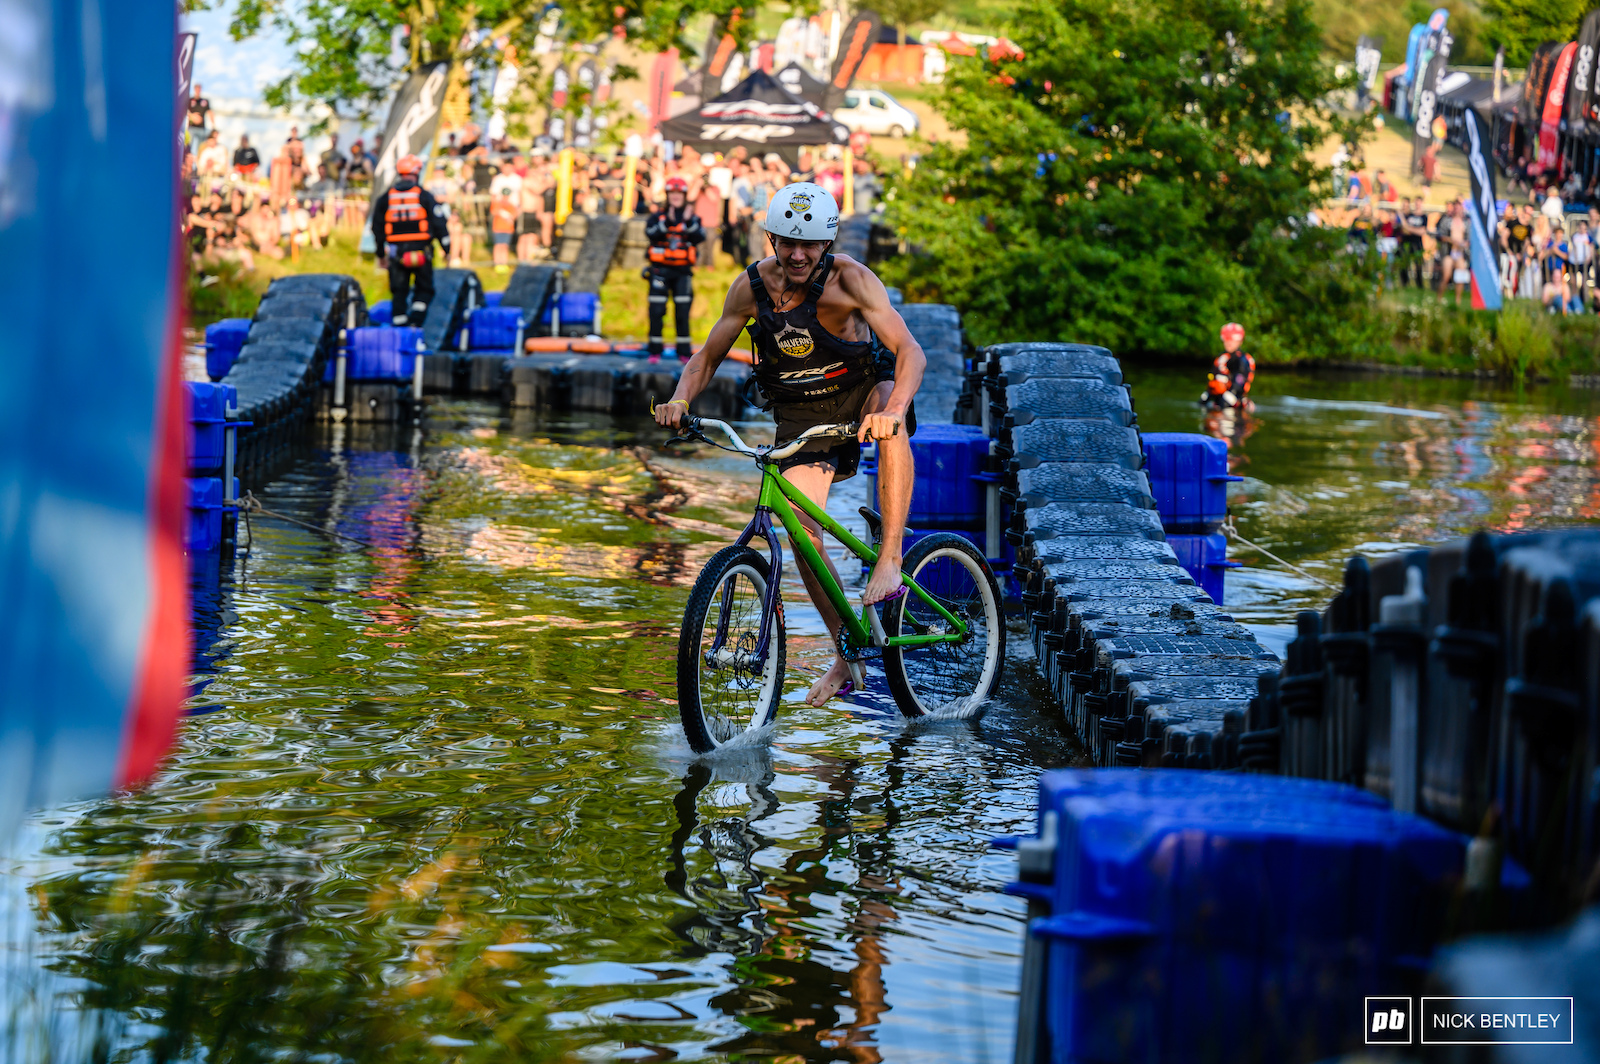 Who knew DMR bikes could ride on water